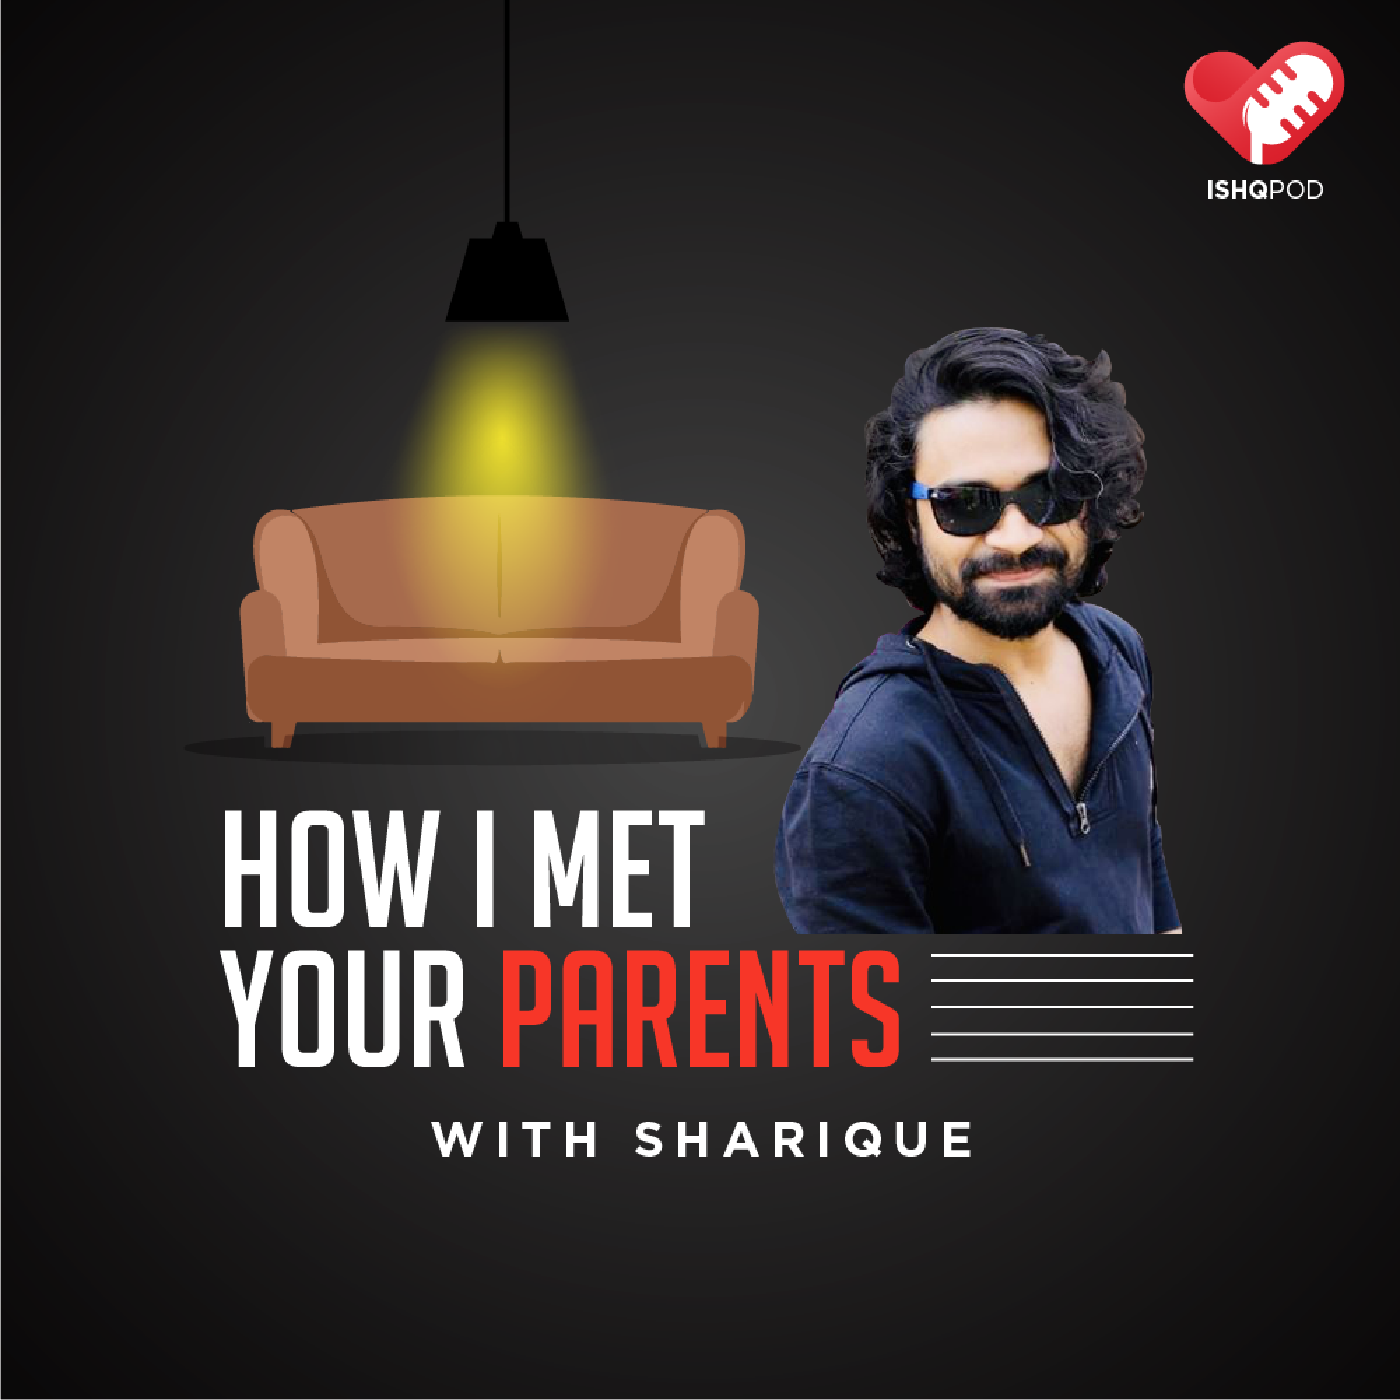 How I Met Your Parents with Sharique (Trailer)